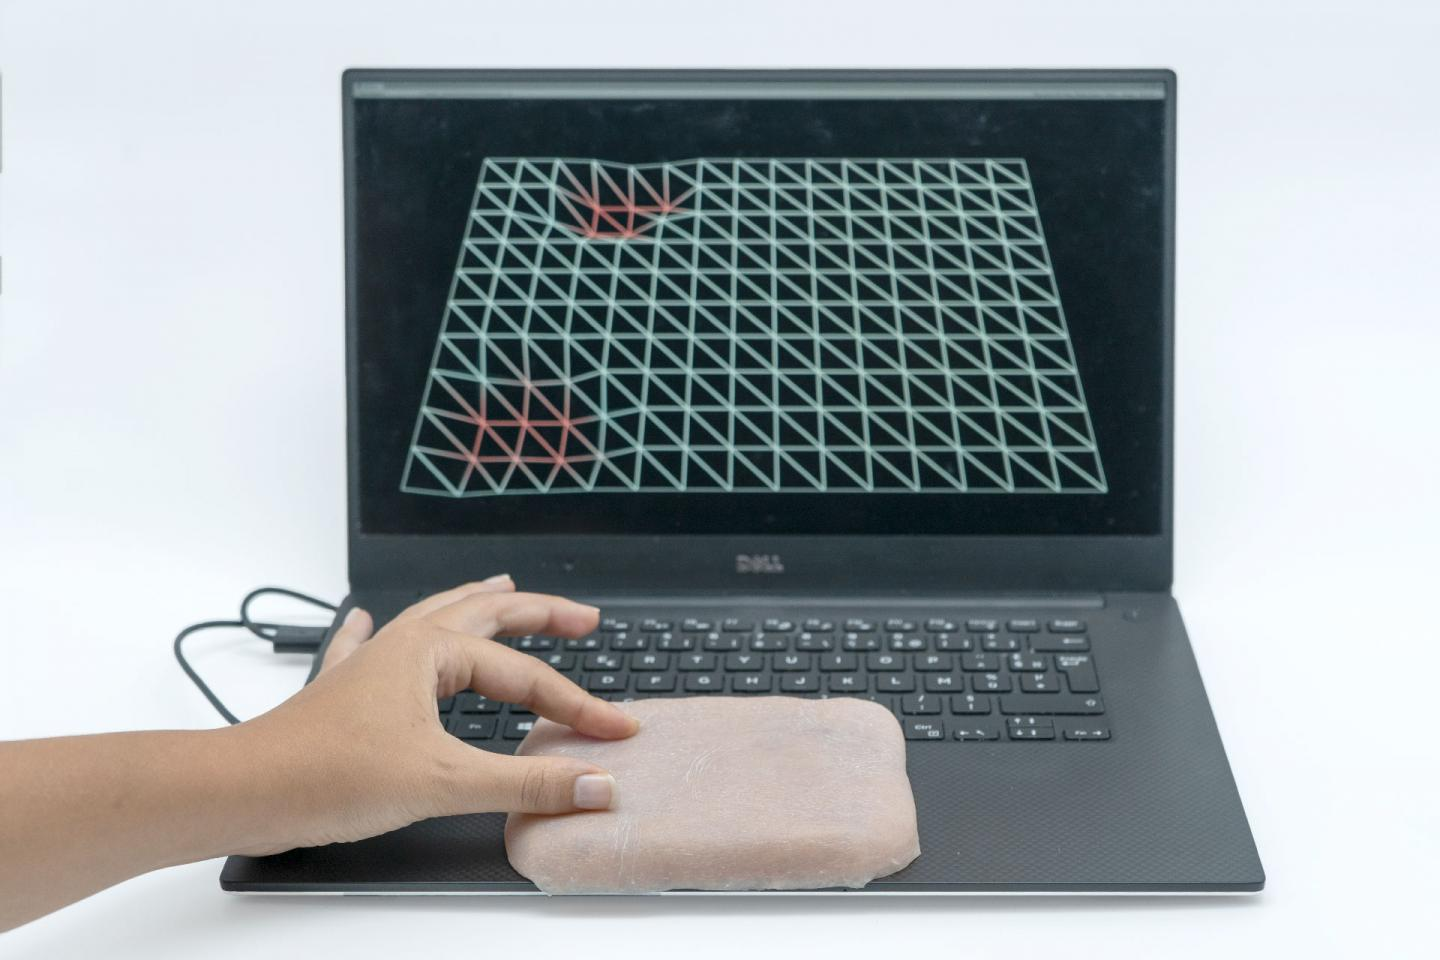 A Skin-On-equipped touchpad tracks the pressure and location of a user's fingertips